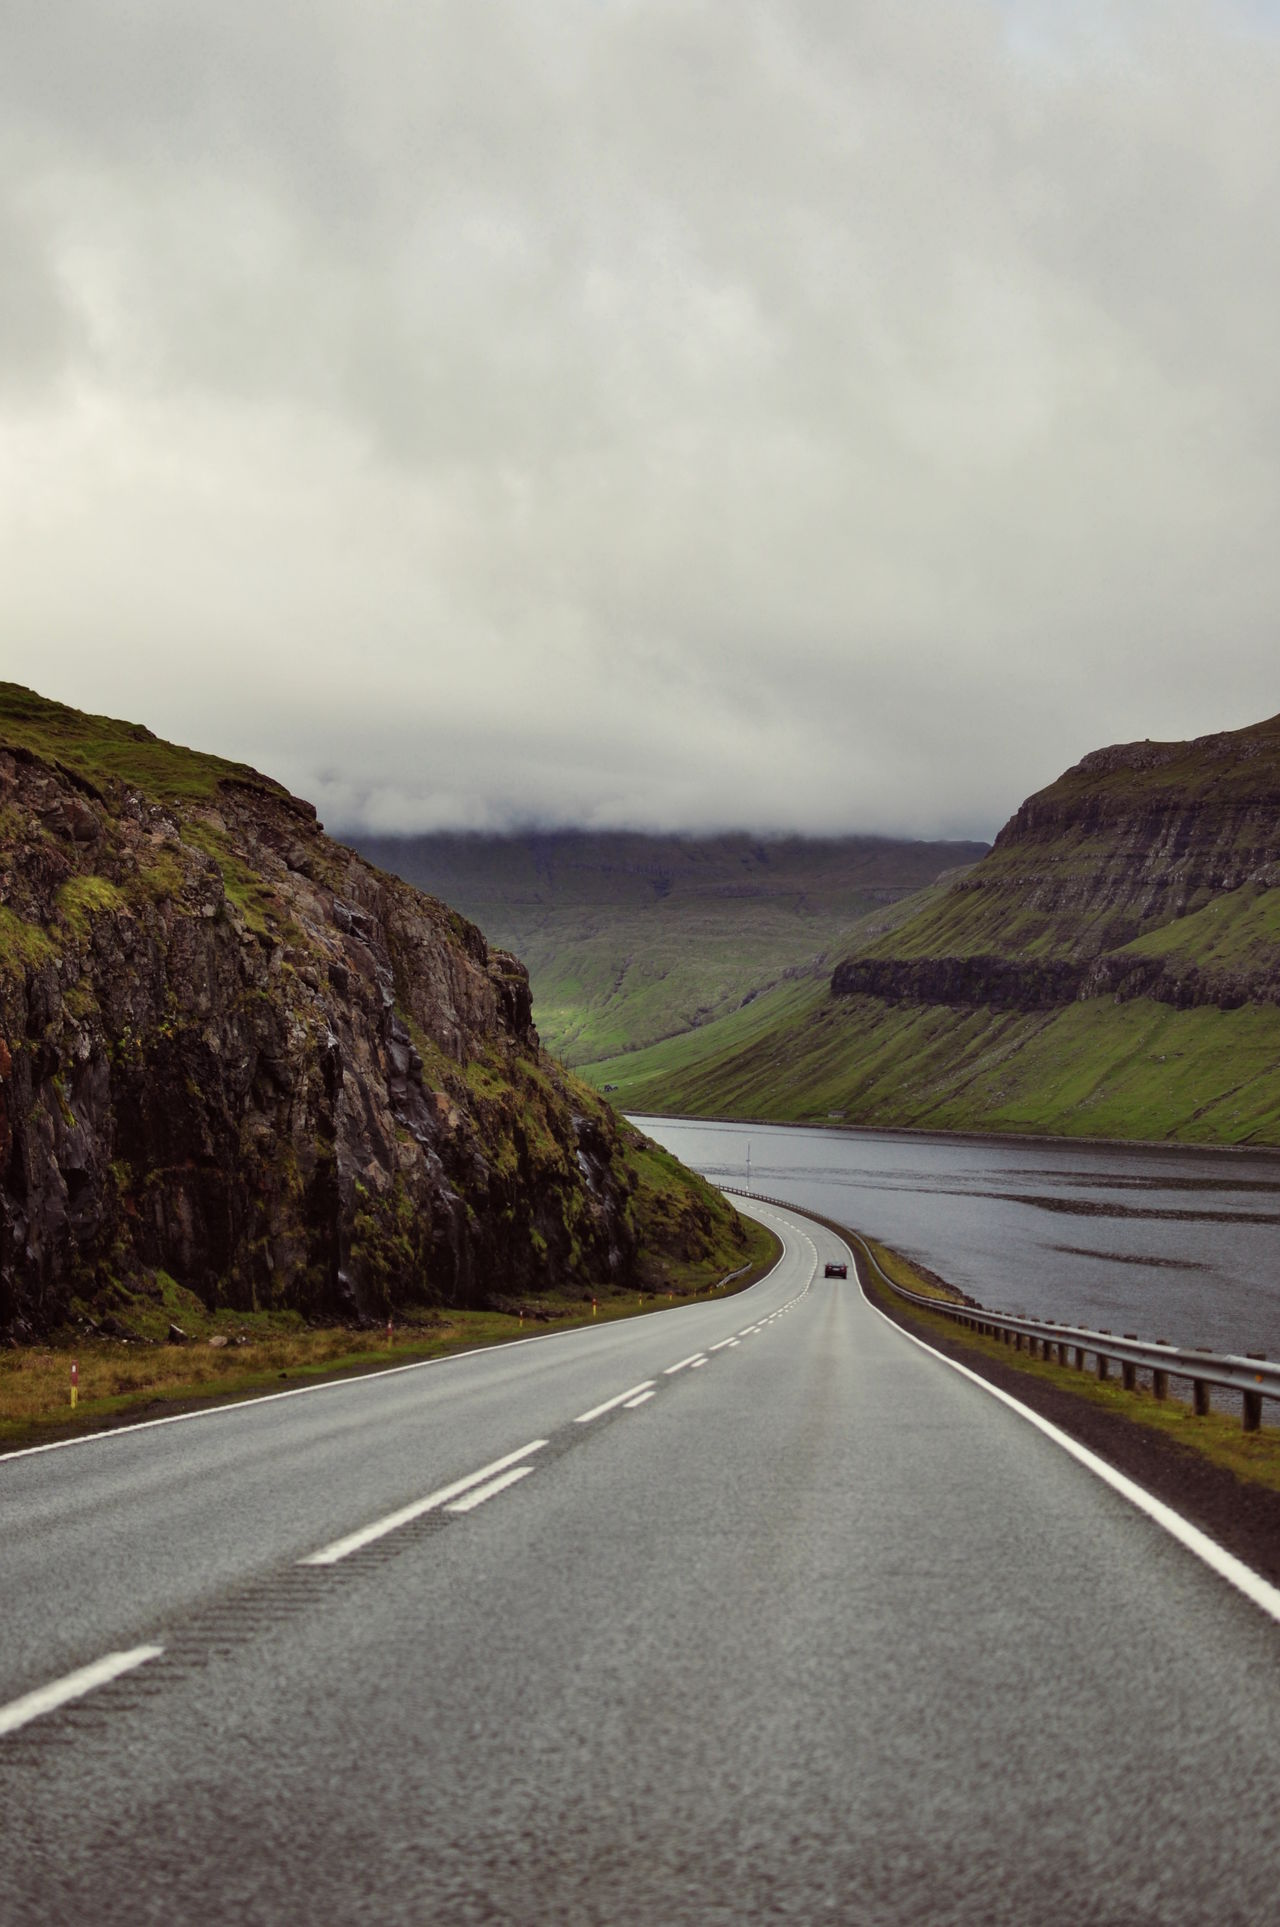 Beauty In Nature Empty Road Landscape Mountain Mountain Range Mountain Road Nature Road The Way Forward Tourism Water